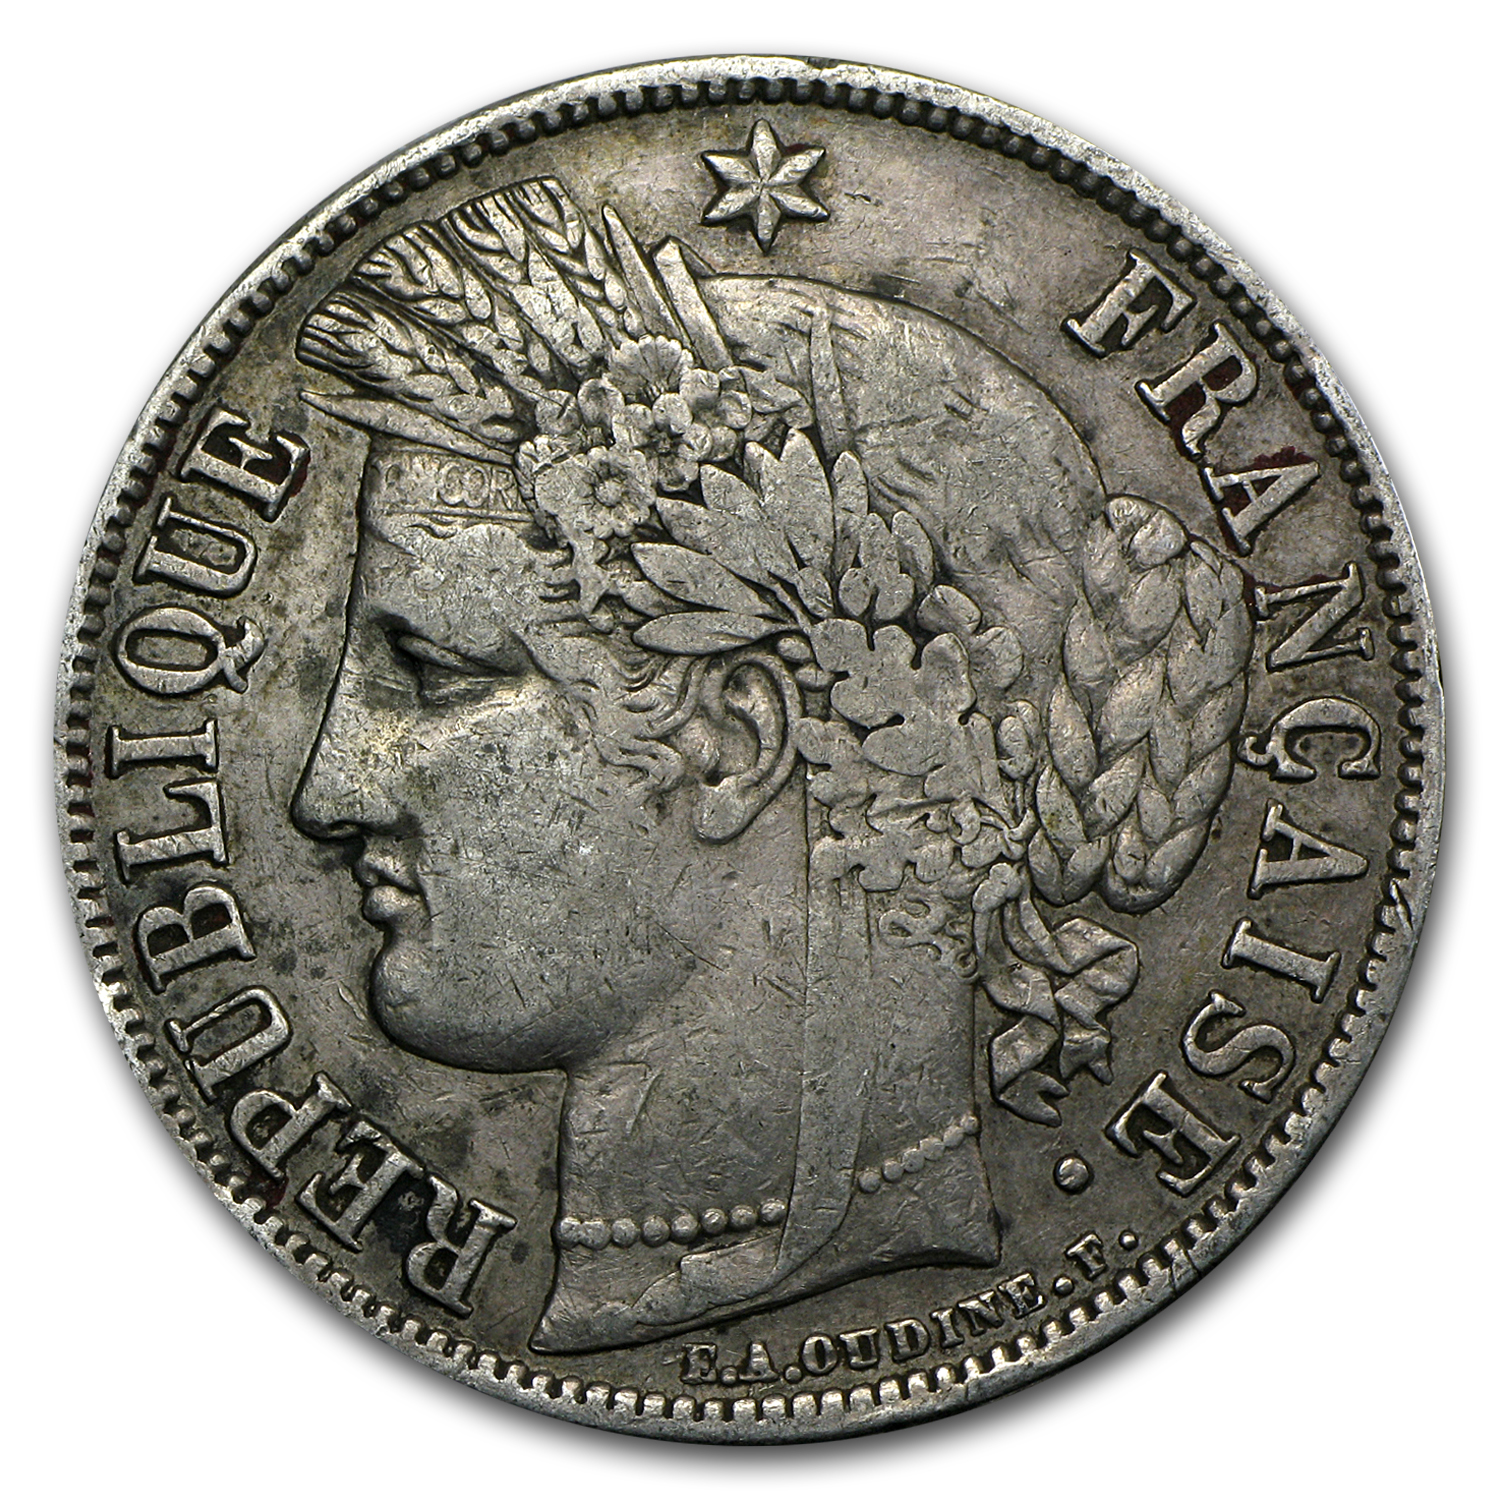 France 5 Francs (1849 -1852) Silver Ceres Head - VF